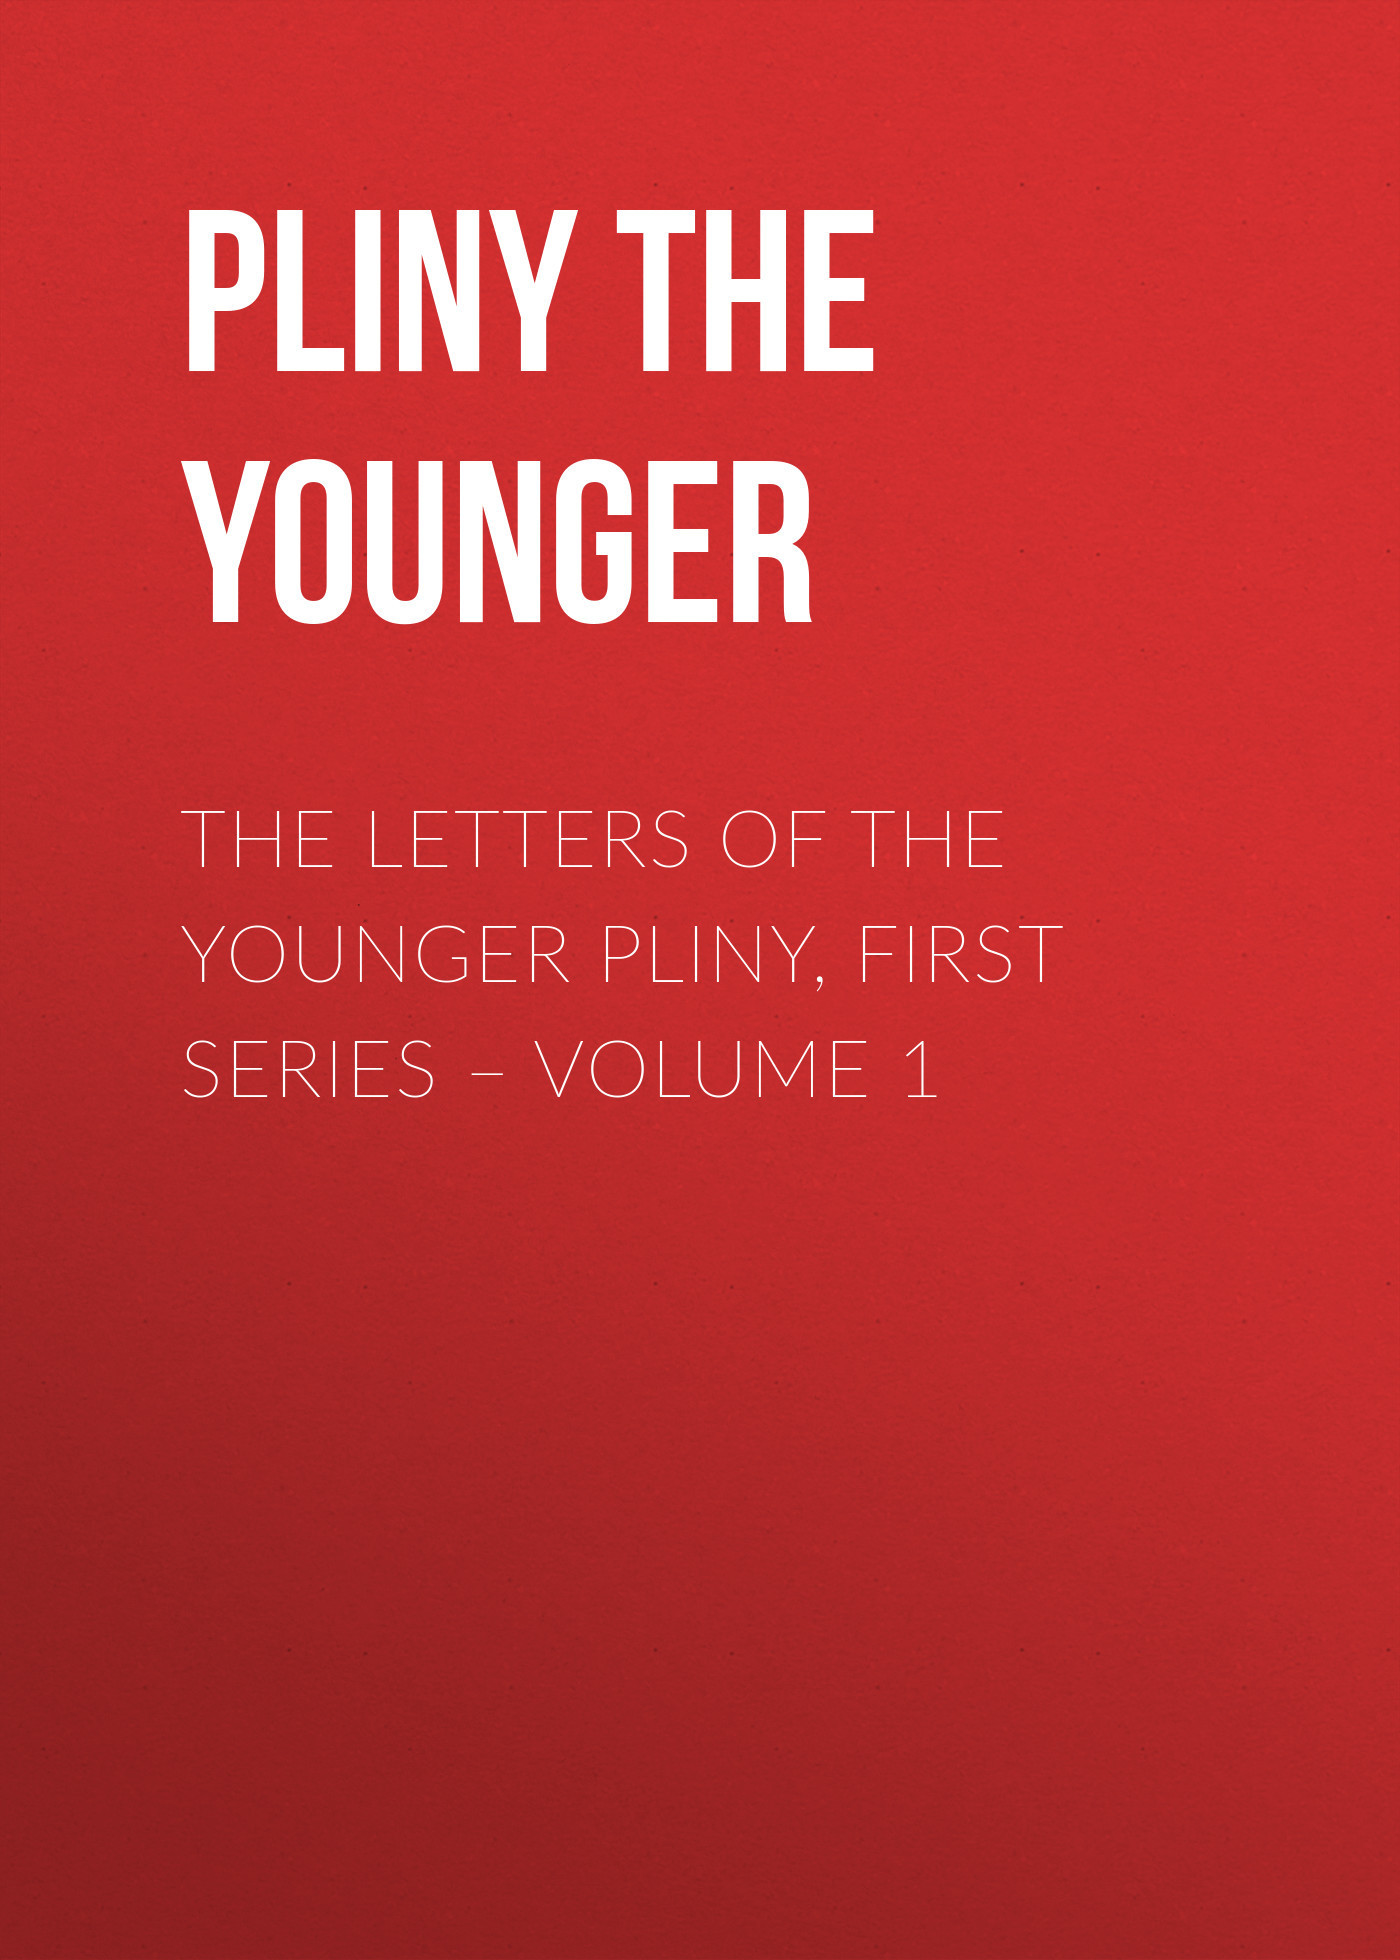 Pliny the Younger The Letters of the Younger Pliny, First Series – Volume 1 secret warriors the complete collection volume 1